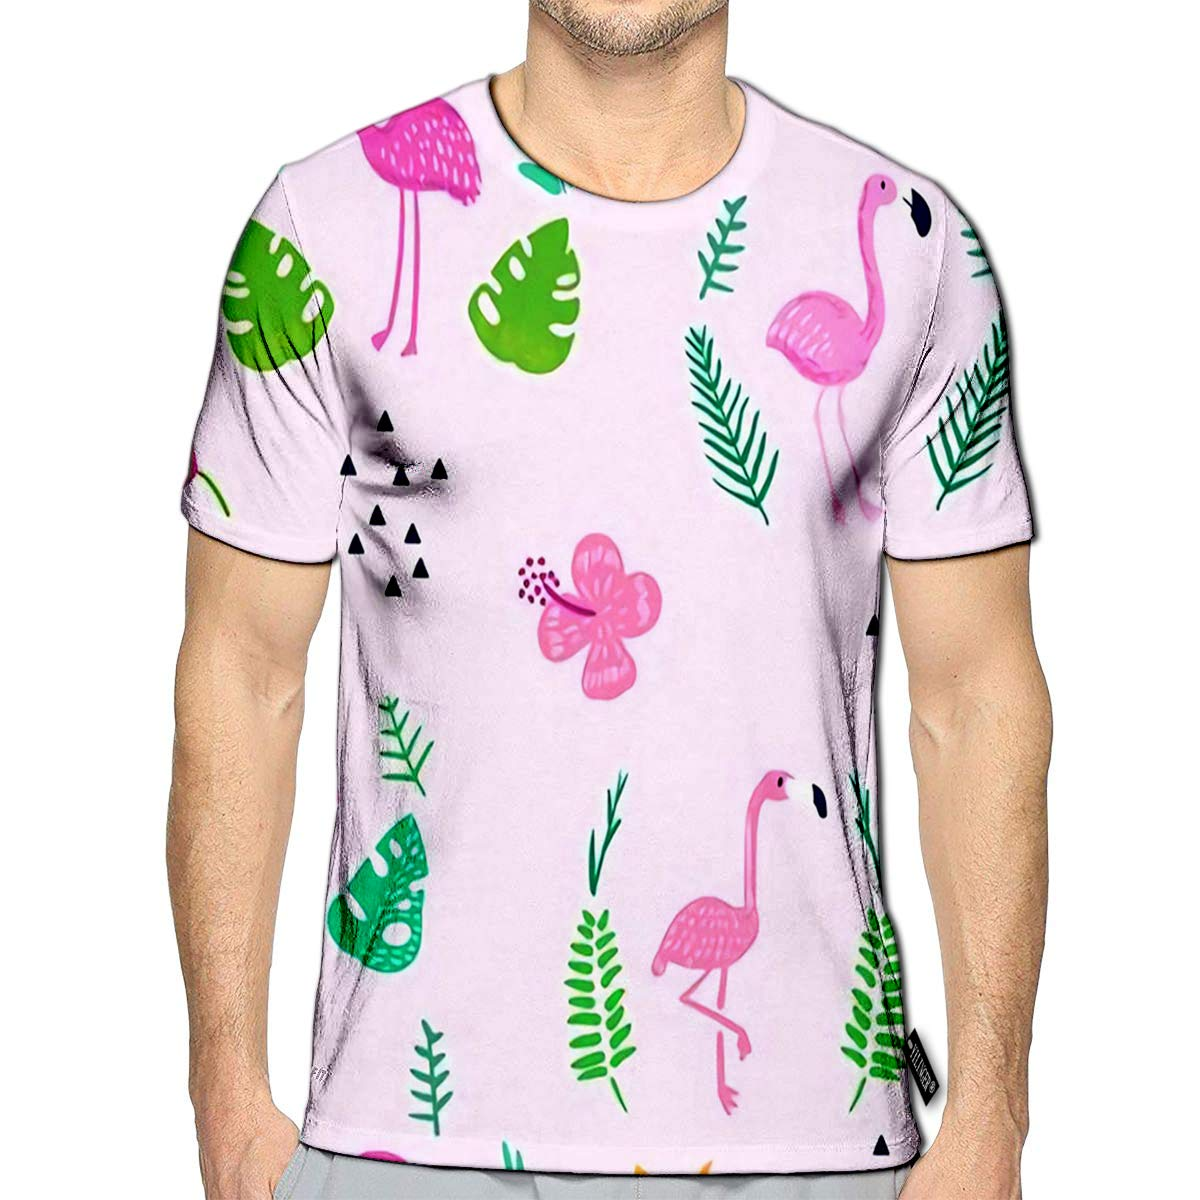 YILINGER 3D Printed T-Shirts Graphics Sea Whale and Starfish Short Sleeve Tops Tees